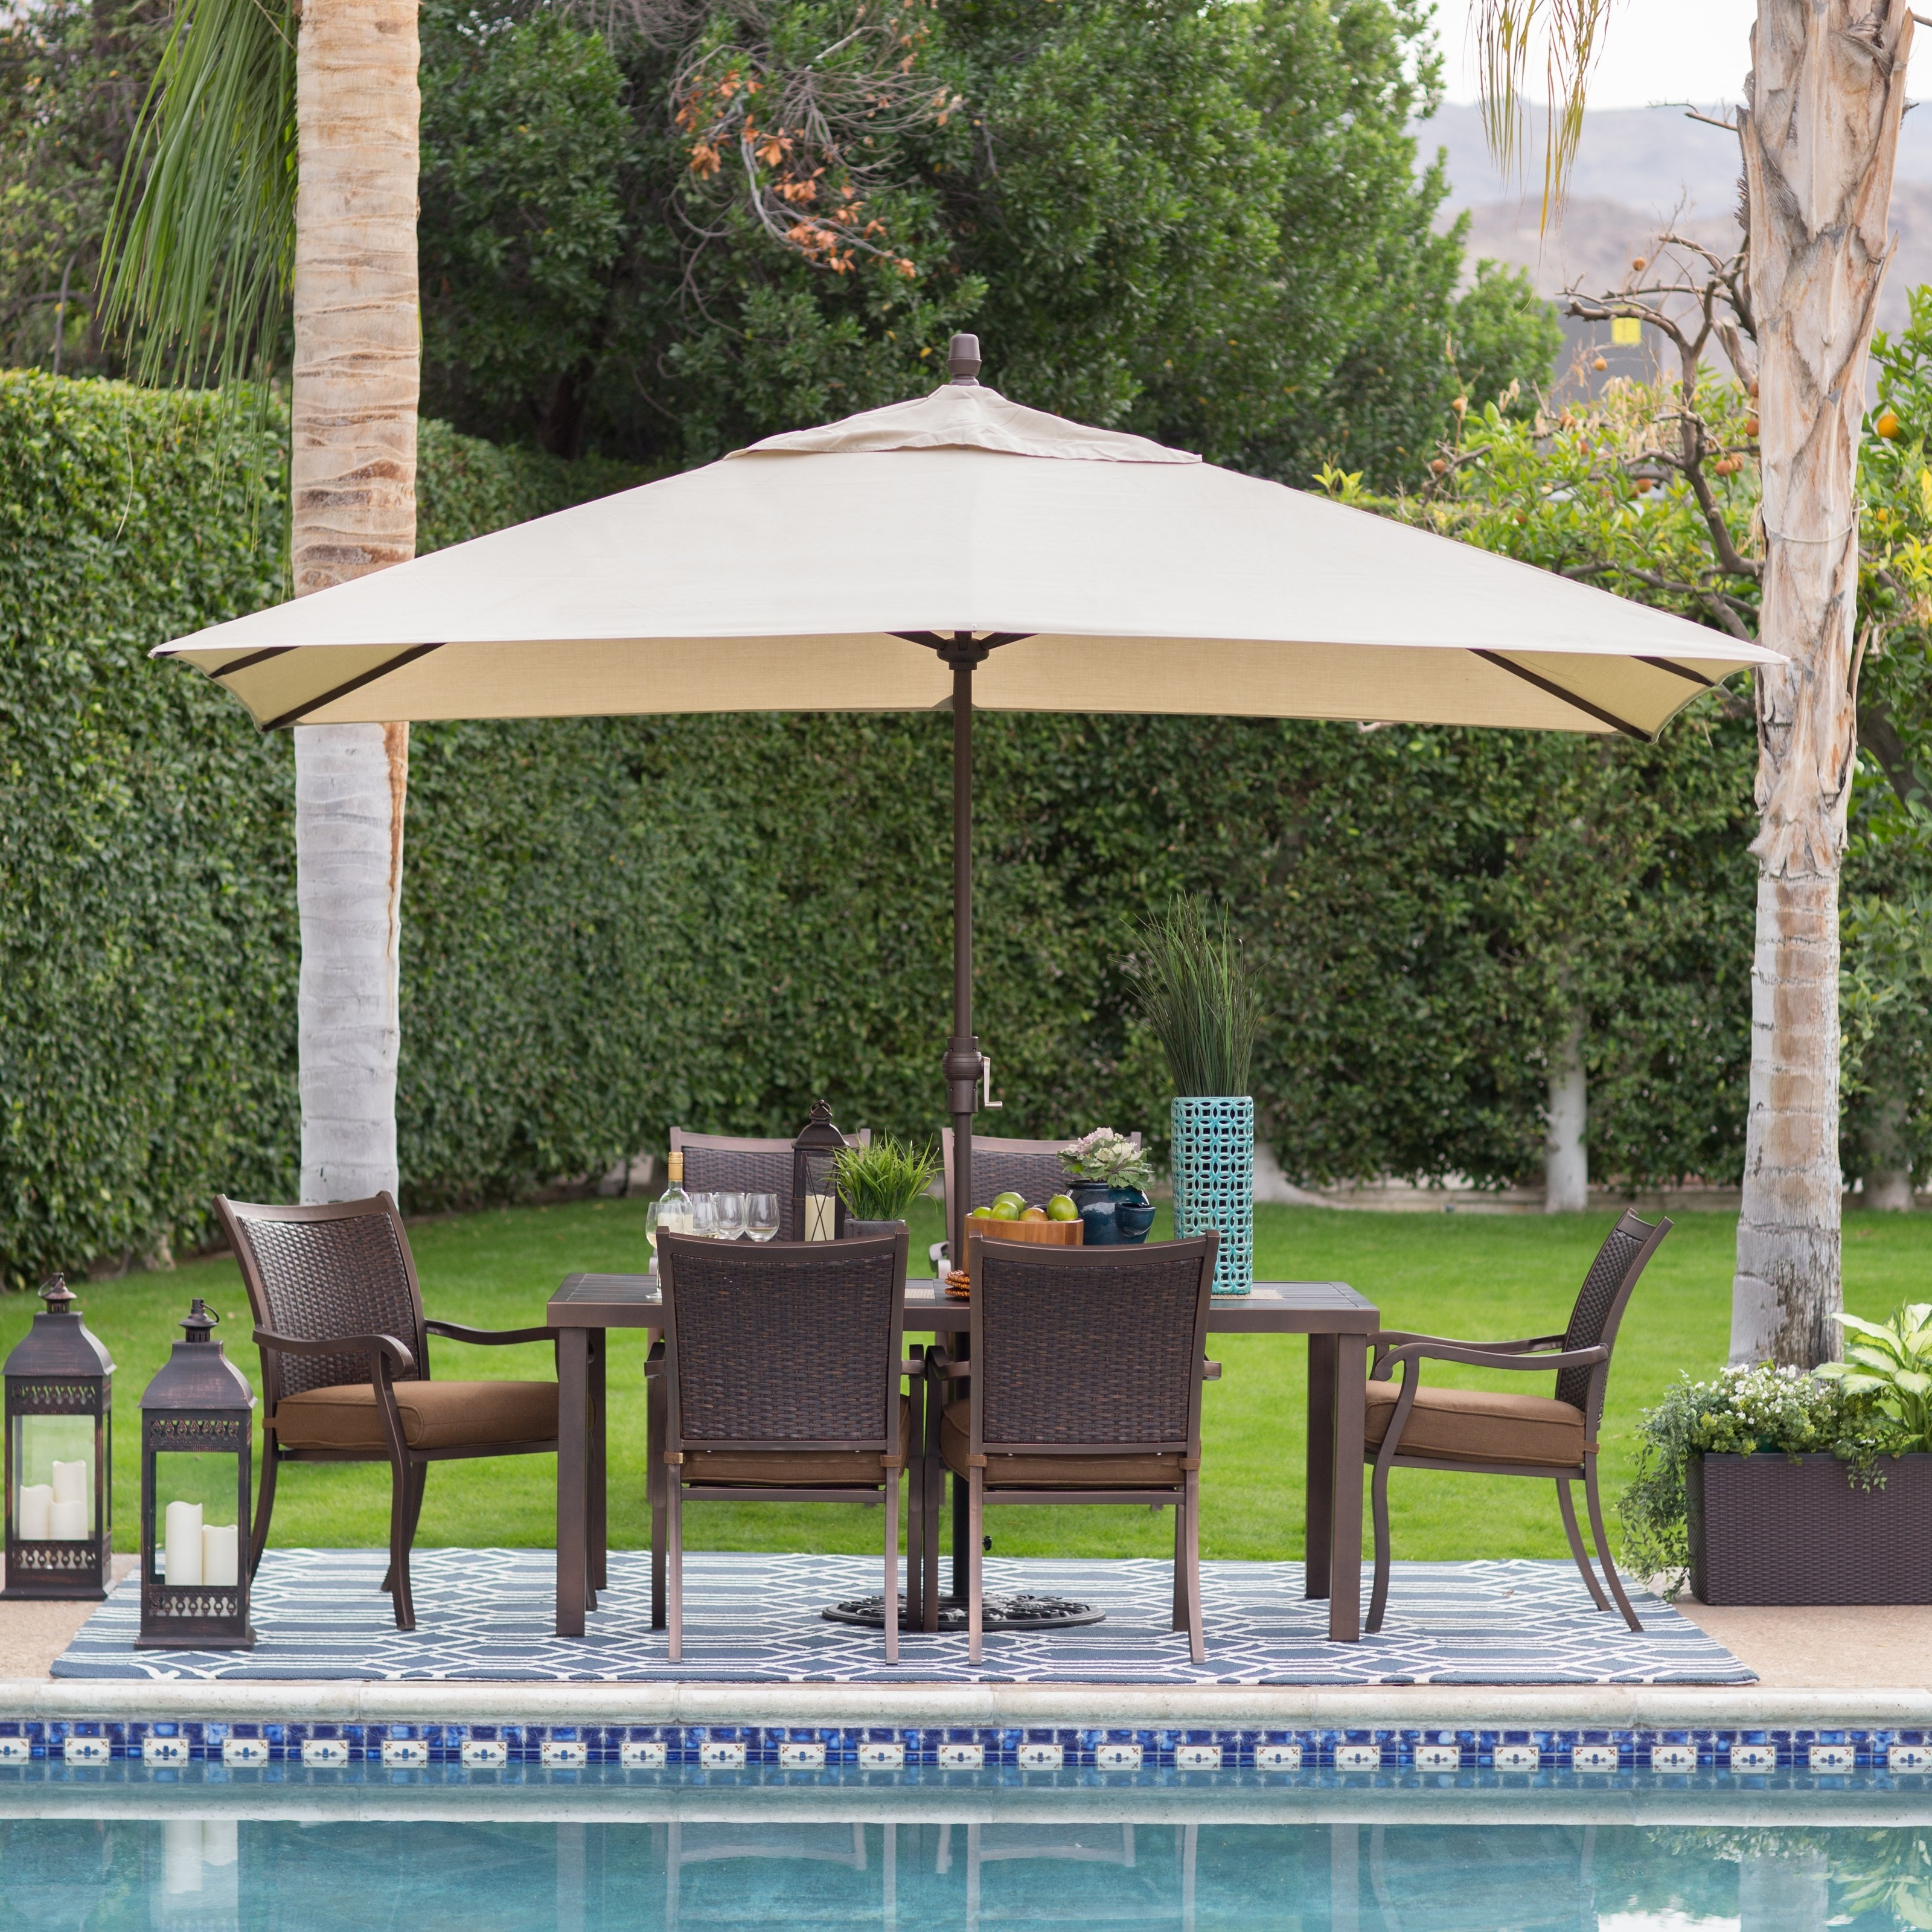 Sunbrella Patio Umbrellas With Solar Lights Inside Well Liked Coral Coast 8 X 11 Ft (View 12 of 20)